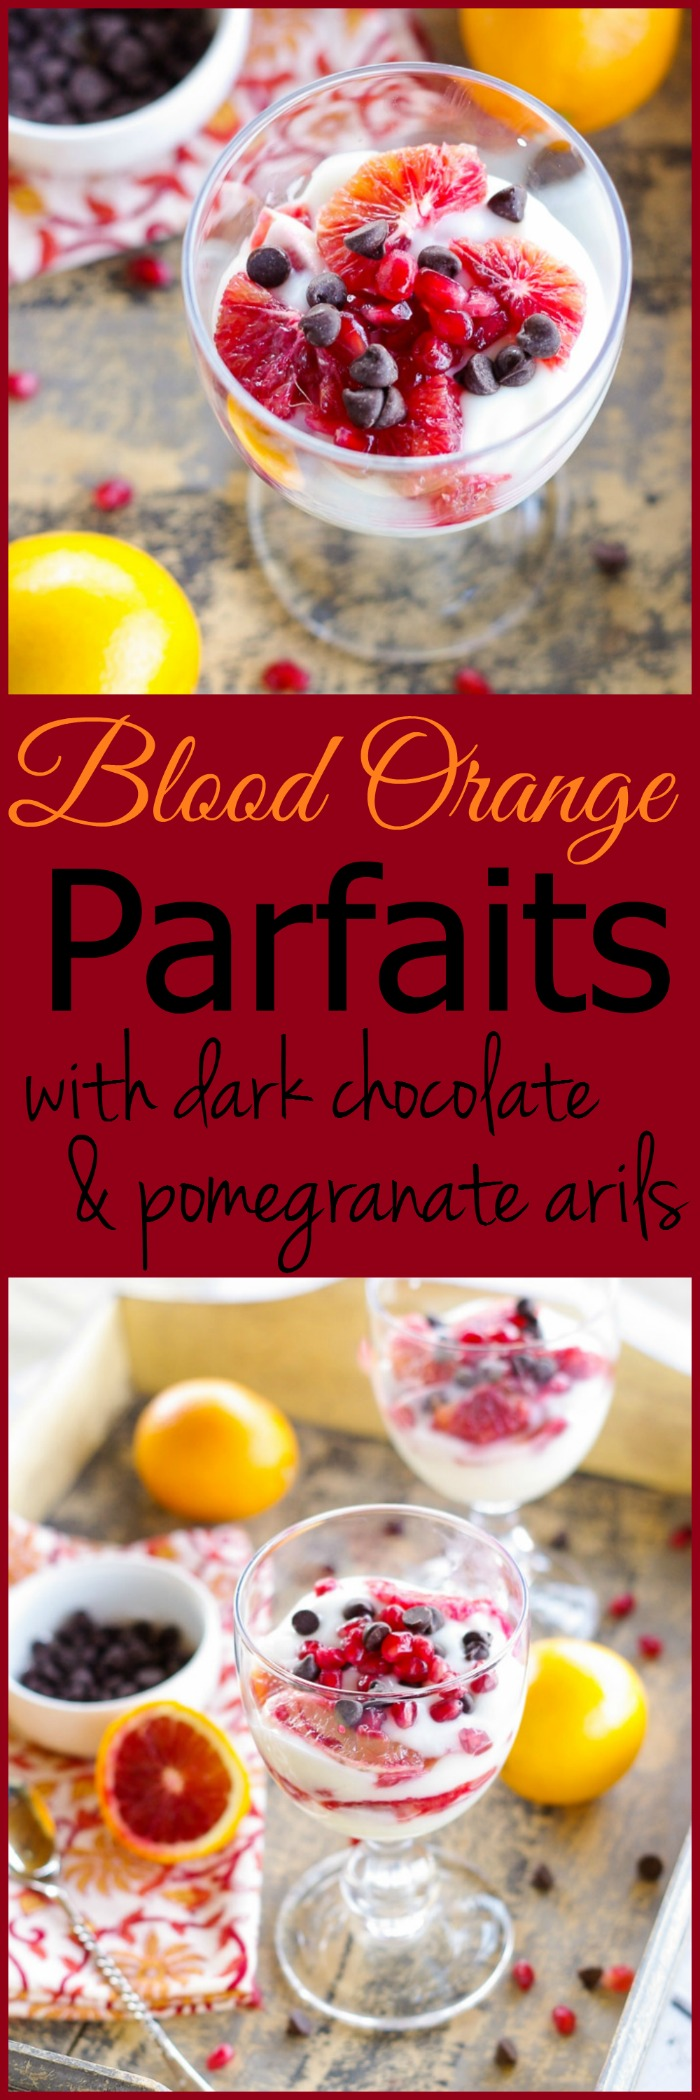 Blood Orange Parfaits with Dark Chocolate Chips & Pomegranate Arils | www.homeandplate.com | Looking for a delicious and heart healthy dessert to serve your sweetie on Valentine's Day?